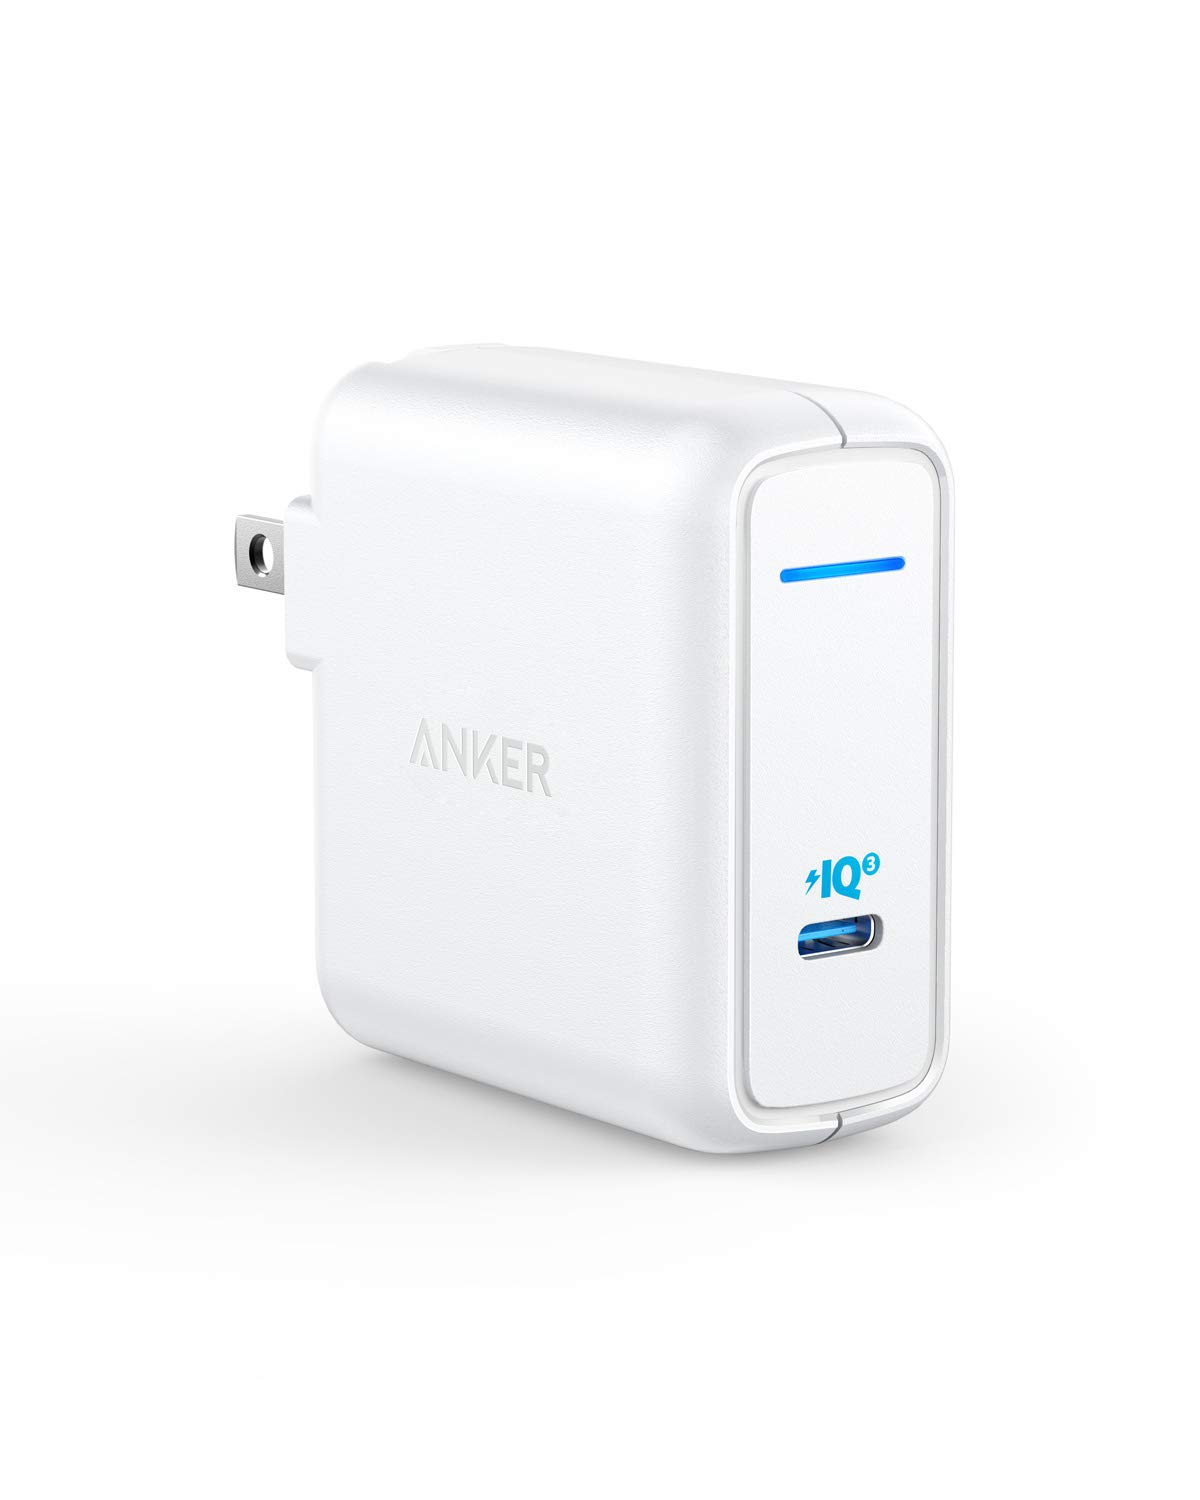 USB C Charger, Anker 60W Power Delivery Fast Charger [PIQ 3.0 & GaN], PowerPort Atom III Power Adapter for iPhone 11/Pro/Max/XR/XS/X, USB-C Laptops, MacBook Pro/Air, iPad Pro, Galaxy, Pixel and More